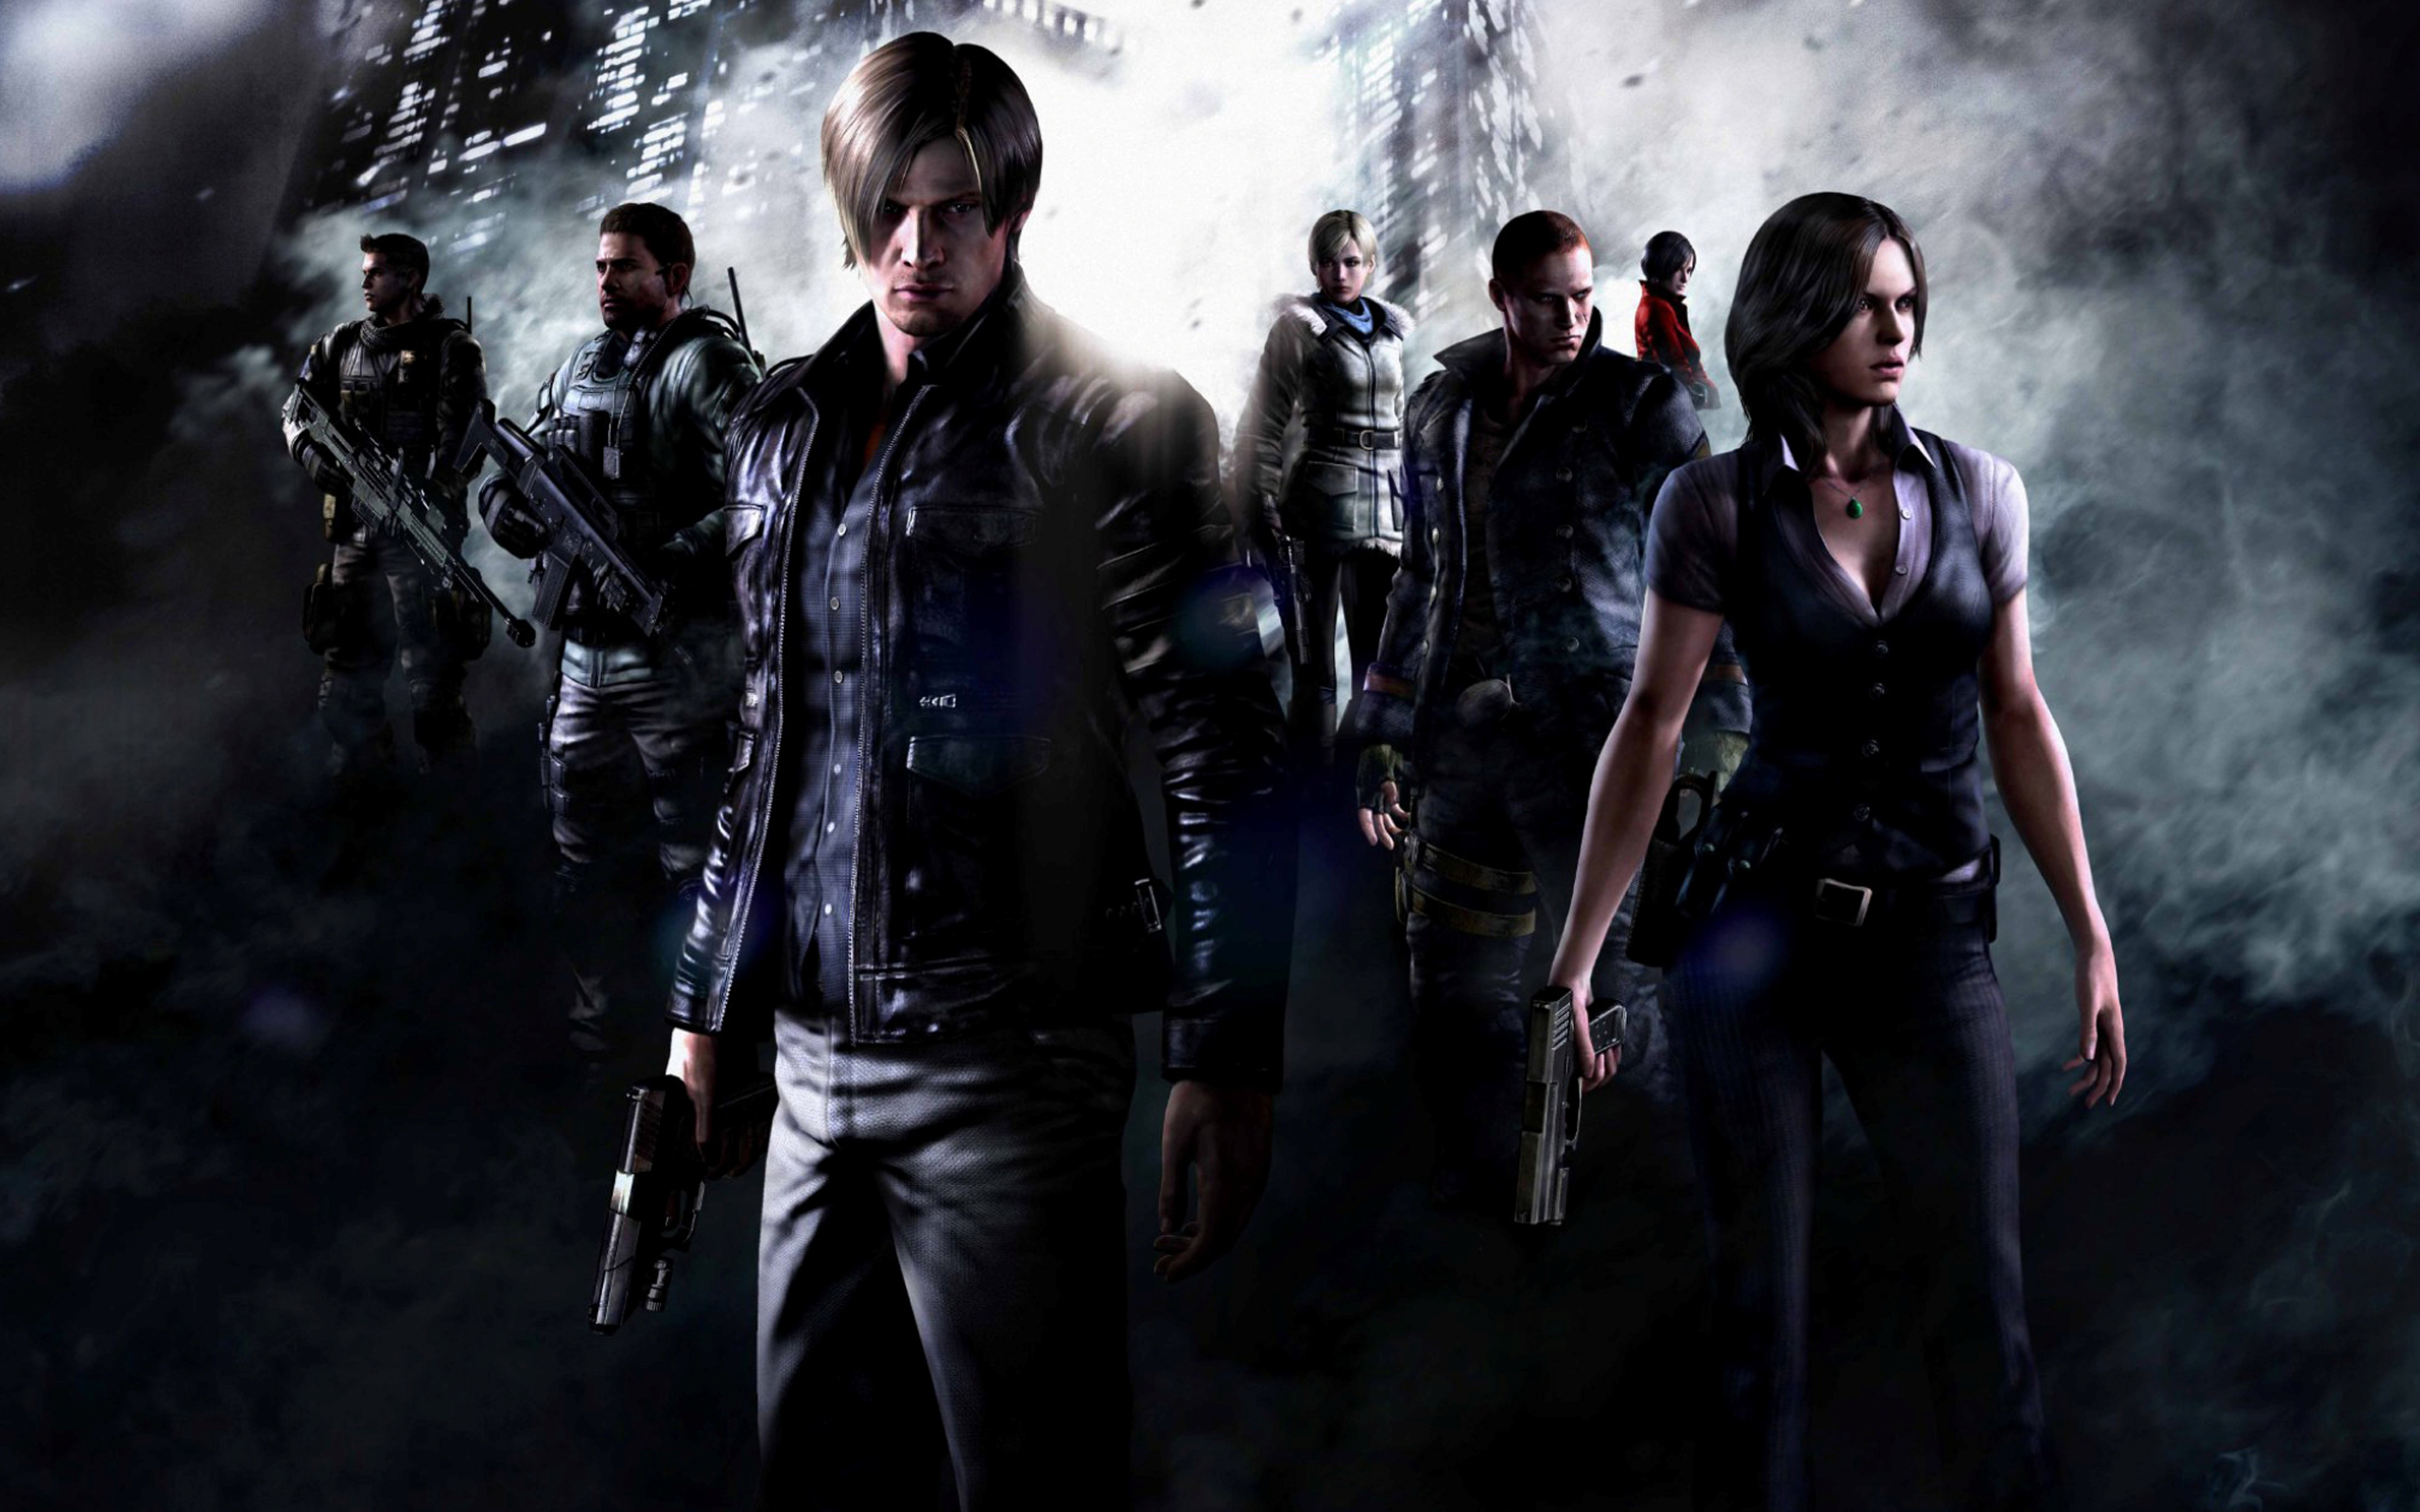 Hd wallpaper resident evil - Hd Wallpaper Background Id 312122 2560x1600 Video Game Resident Evil 6